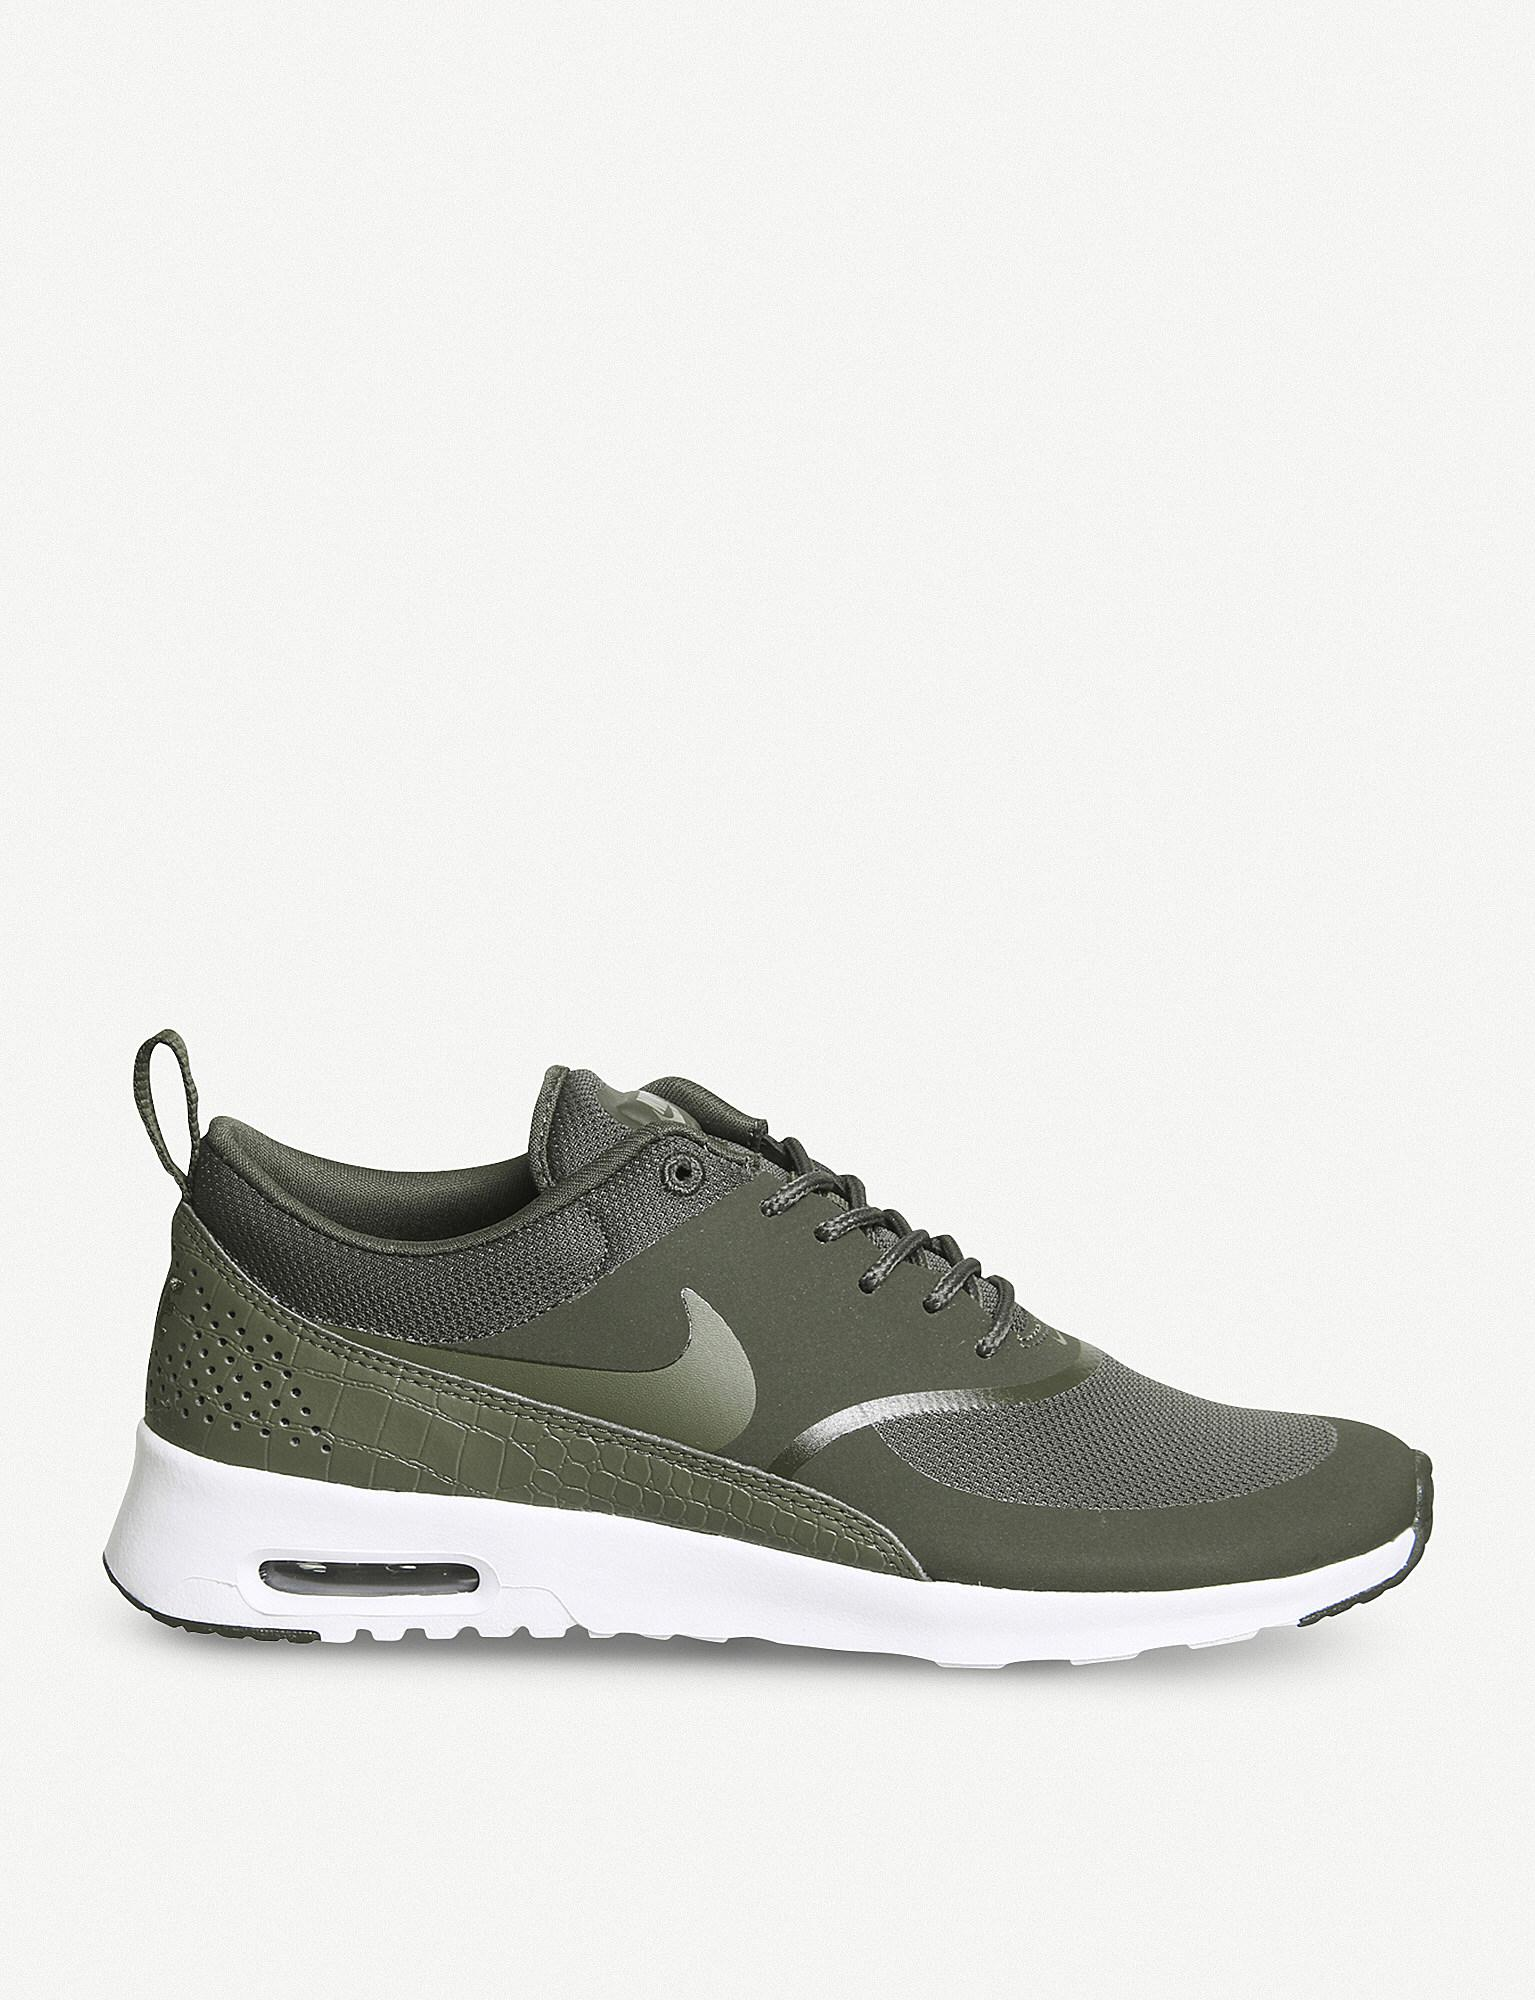 lowest price new style reasonably priced Air Max Thea Low-top Mesh Trainers